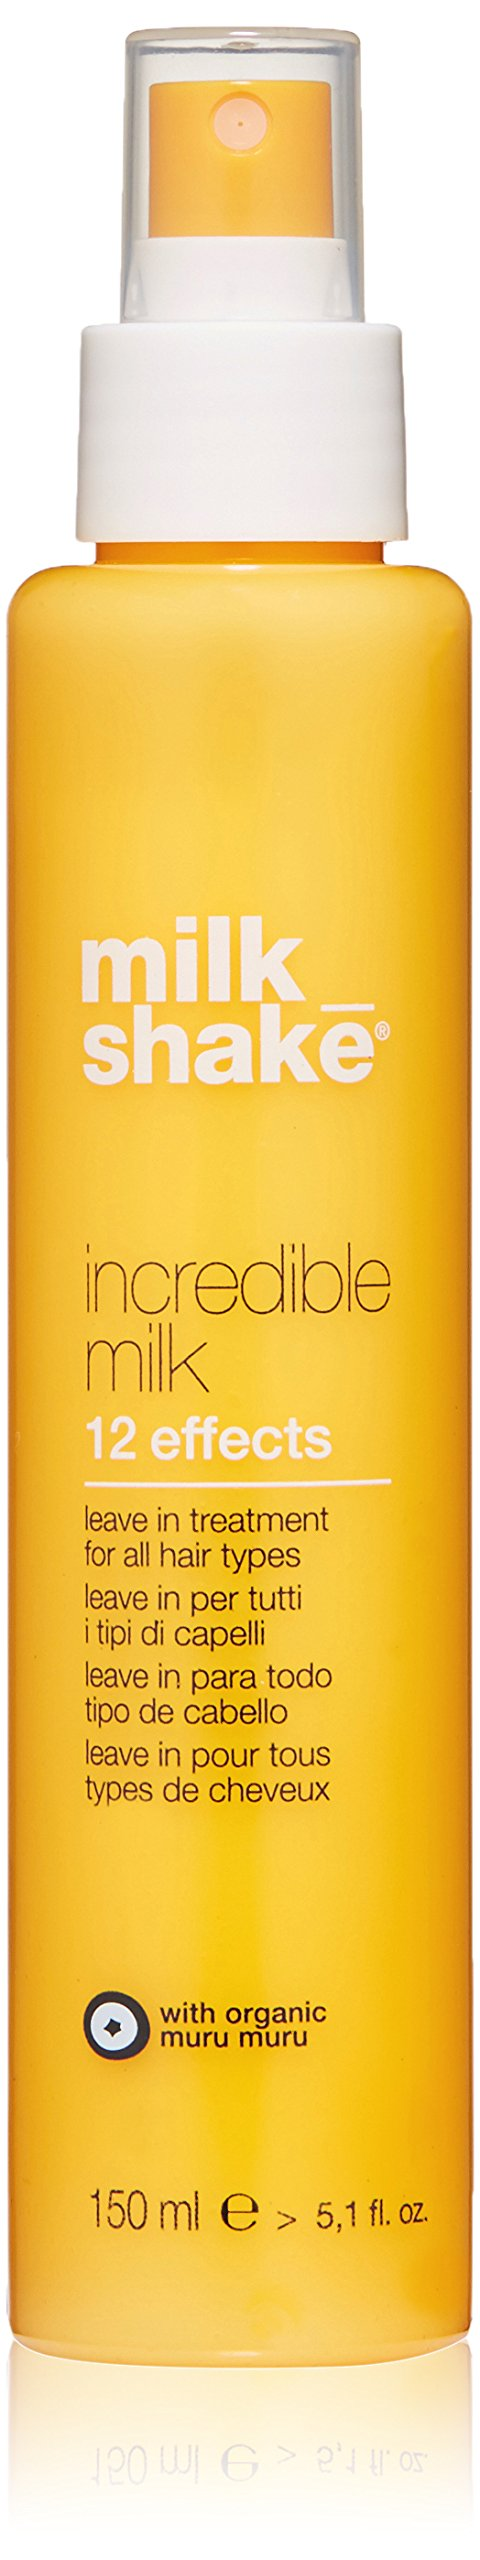 milk_shake Incredible Milk, 5 fl. oz.